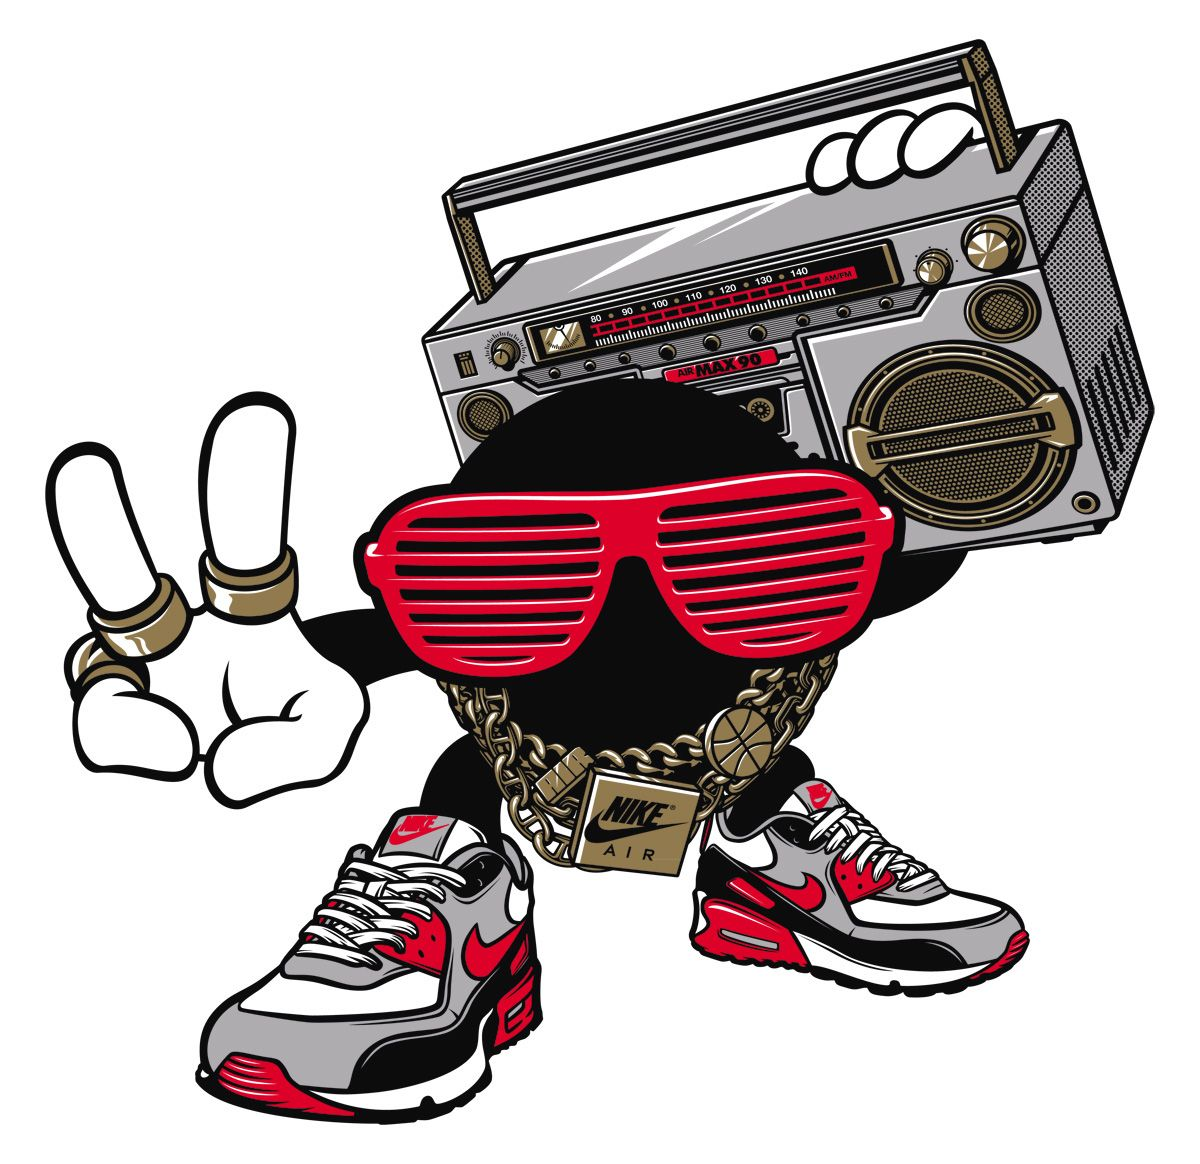 "Two illustrations for graphic tees for Nike Footlocker Europe.""Mr. Bad Airs does Hip Hop"" - Mr. Bad Airs character with Nike Air Max 90's and hip-hop elements.""SO FLY"" - Fly character with Nike Sunrise shoes and a boombox."